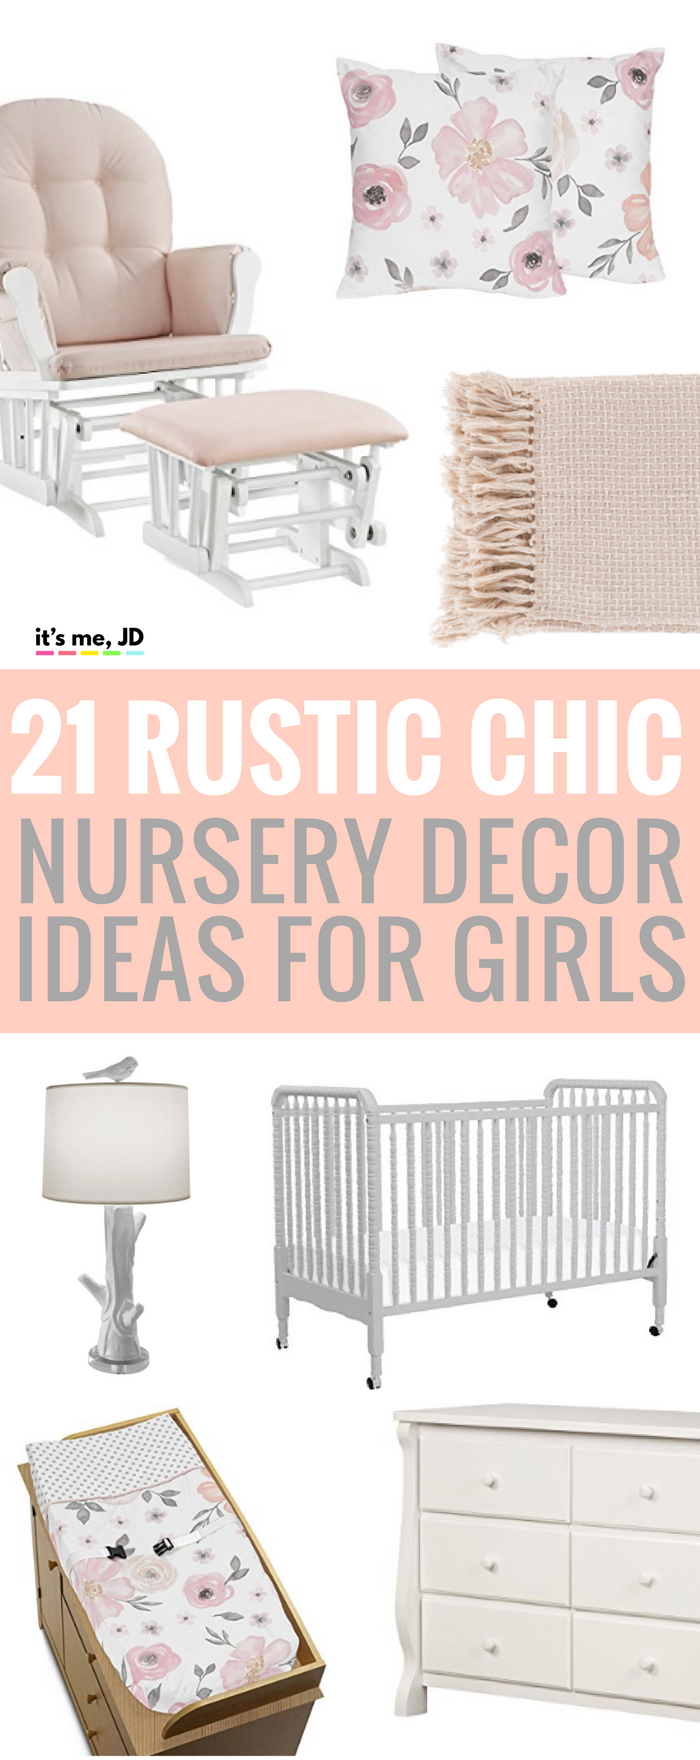 21 Rustic Chic Nursery Decor Ideas for Girls